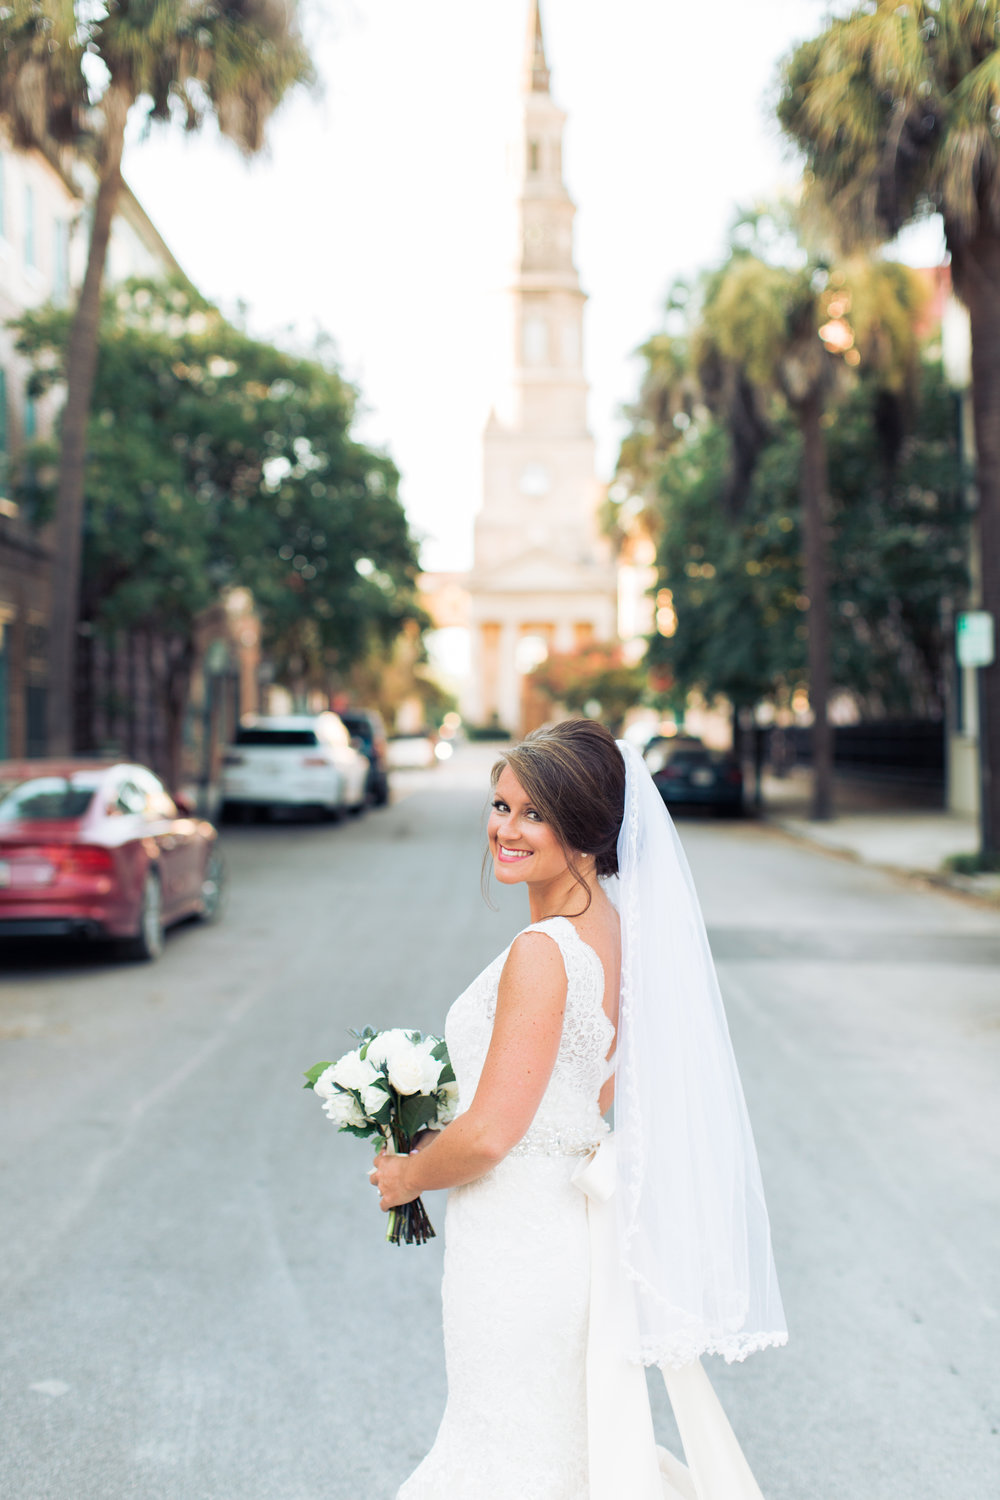 Our first stop at Brittany and Shawn's engagement session also became our first stop at her bridal session! There is just something so iconic about St. Philip's Church and where it sits on quaint Church Street in downtown Charleston where Cobblestone streets meet with pink houses.